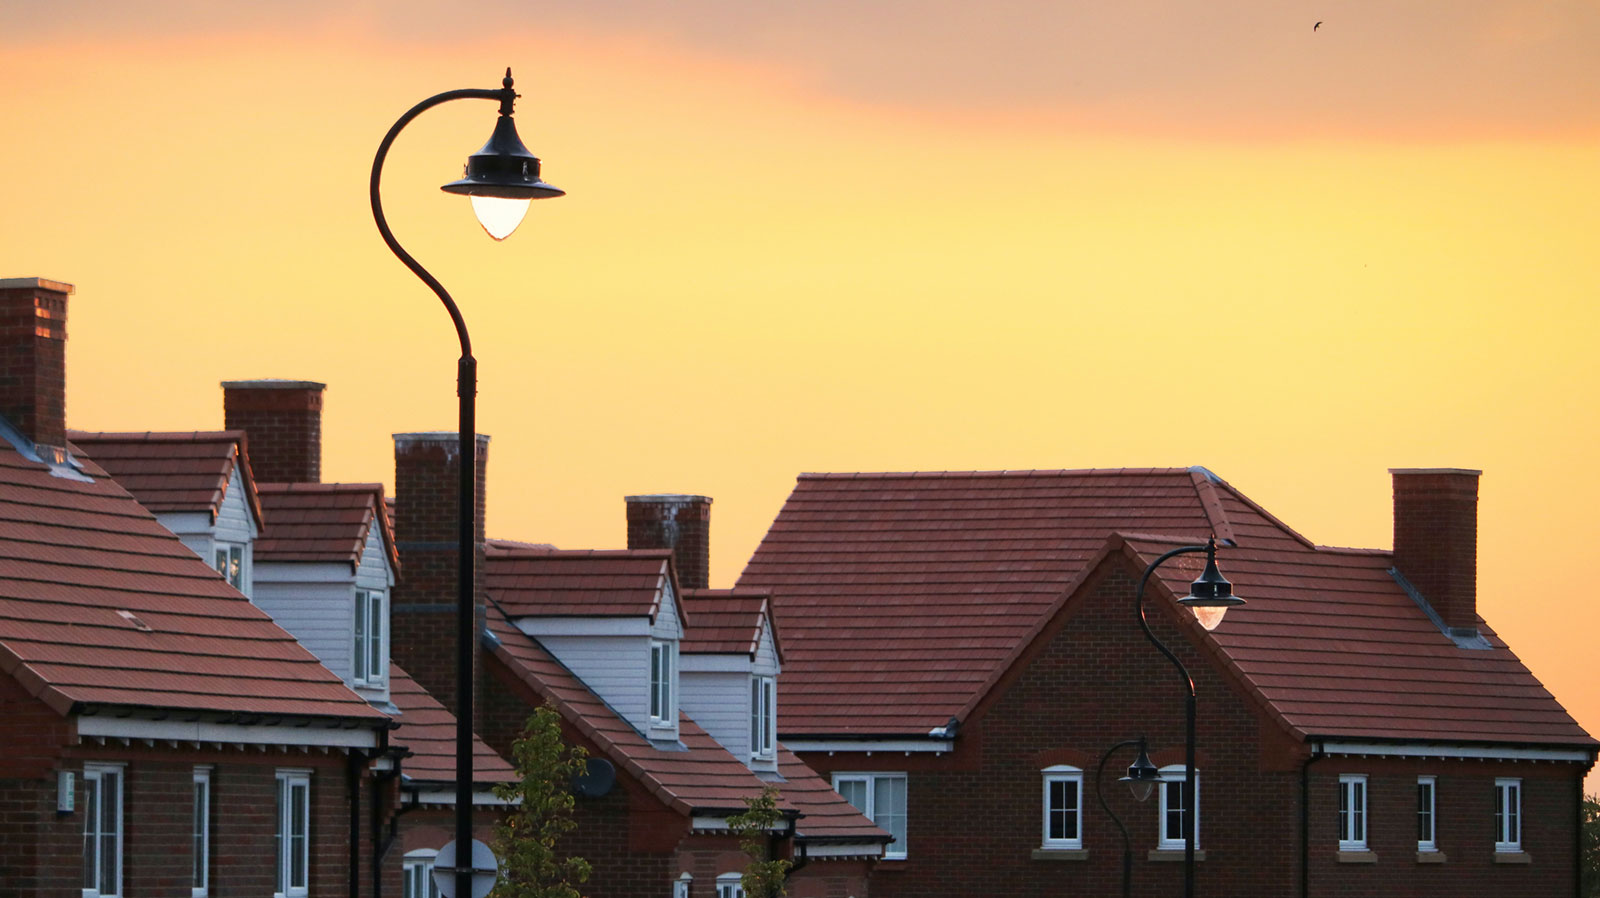 Ready to Refinance Your Home? Here Are the Current Rates